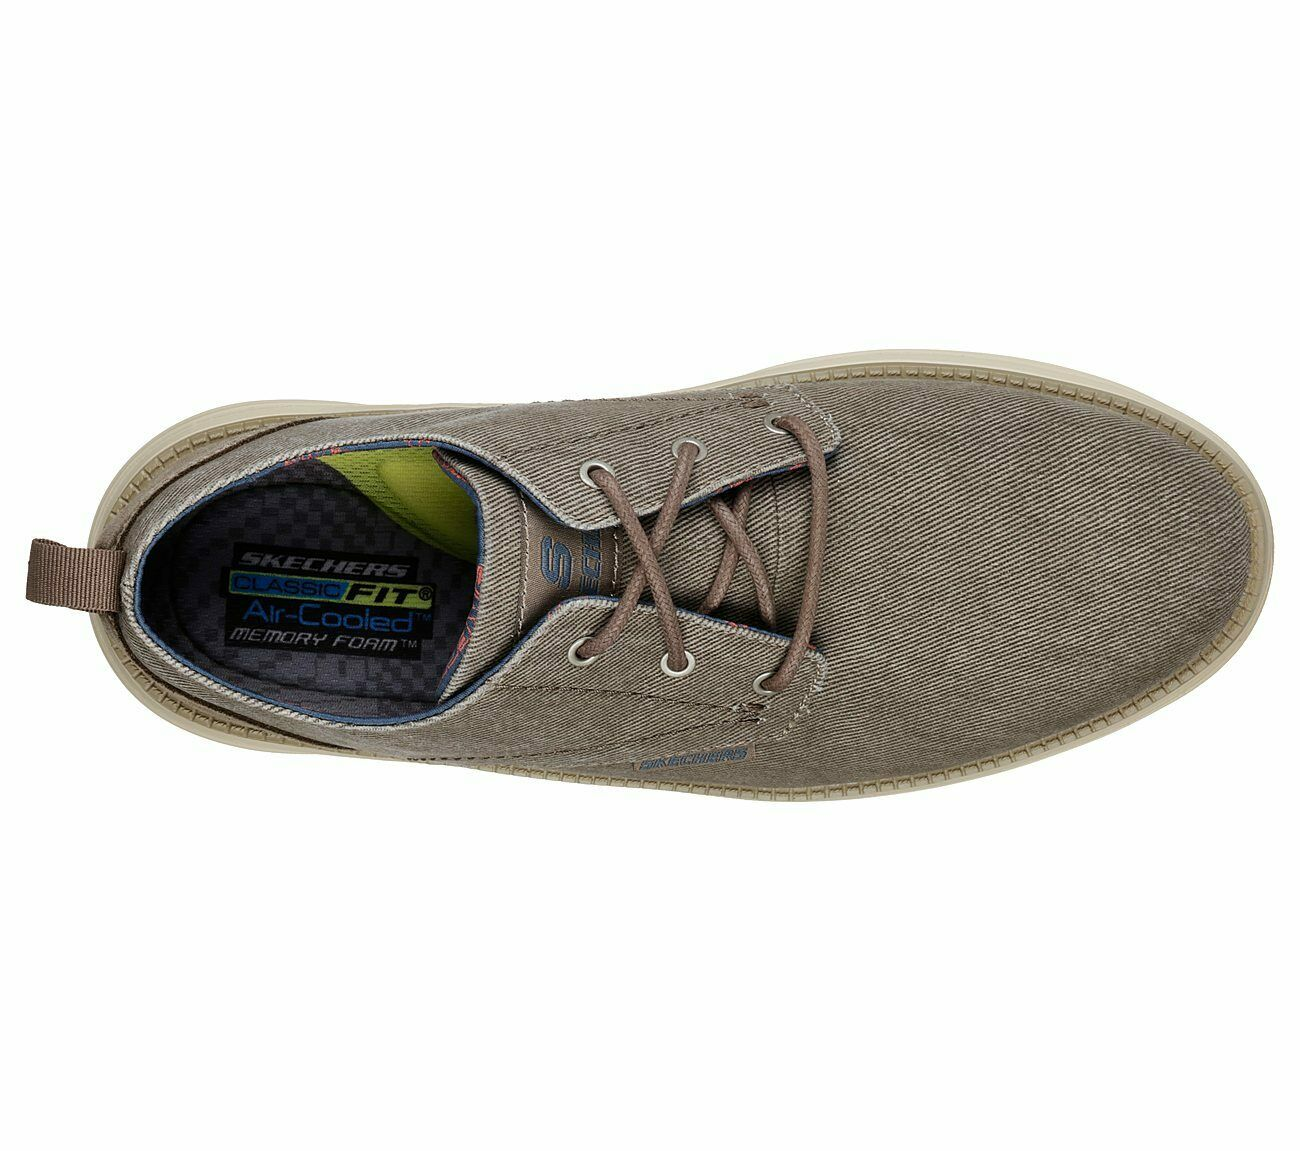 Pexton Shoes Lace Up Canvas Memory Foam Mens Trainer 65910 Skechers Status 2.0